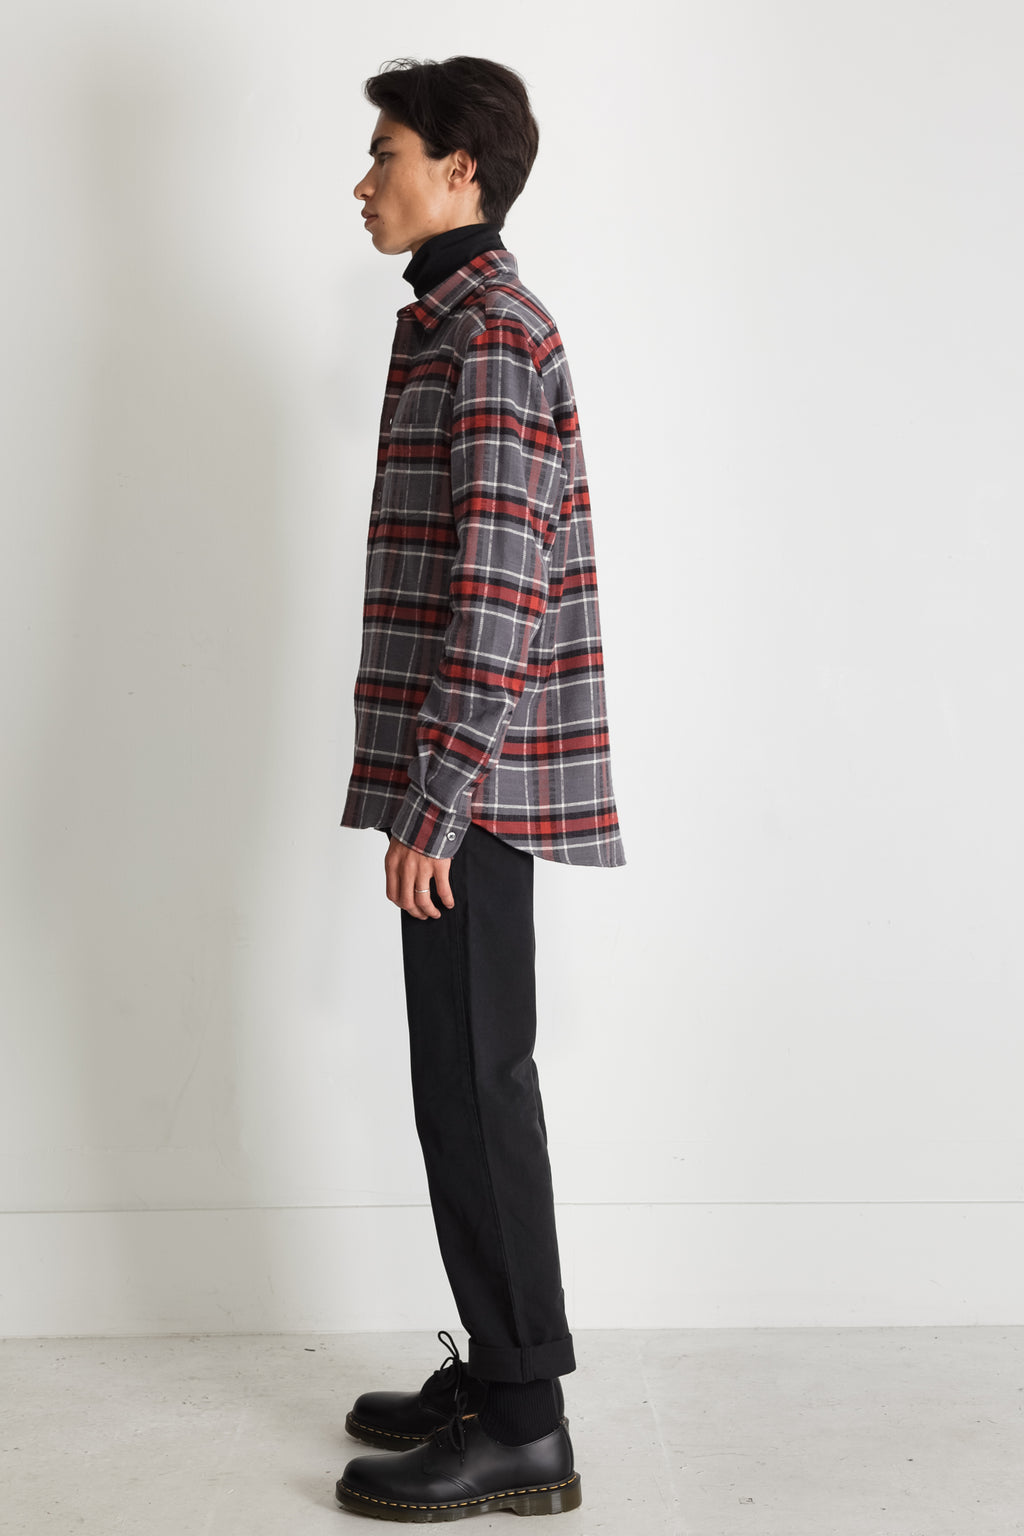 Japanese Cassidy Plaid in Grey and Rust 05